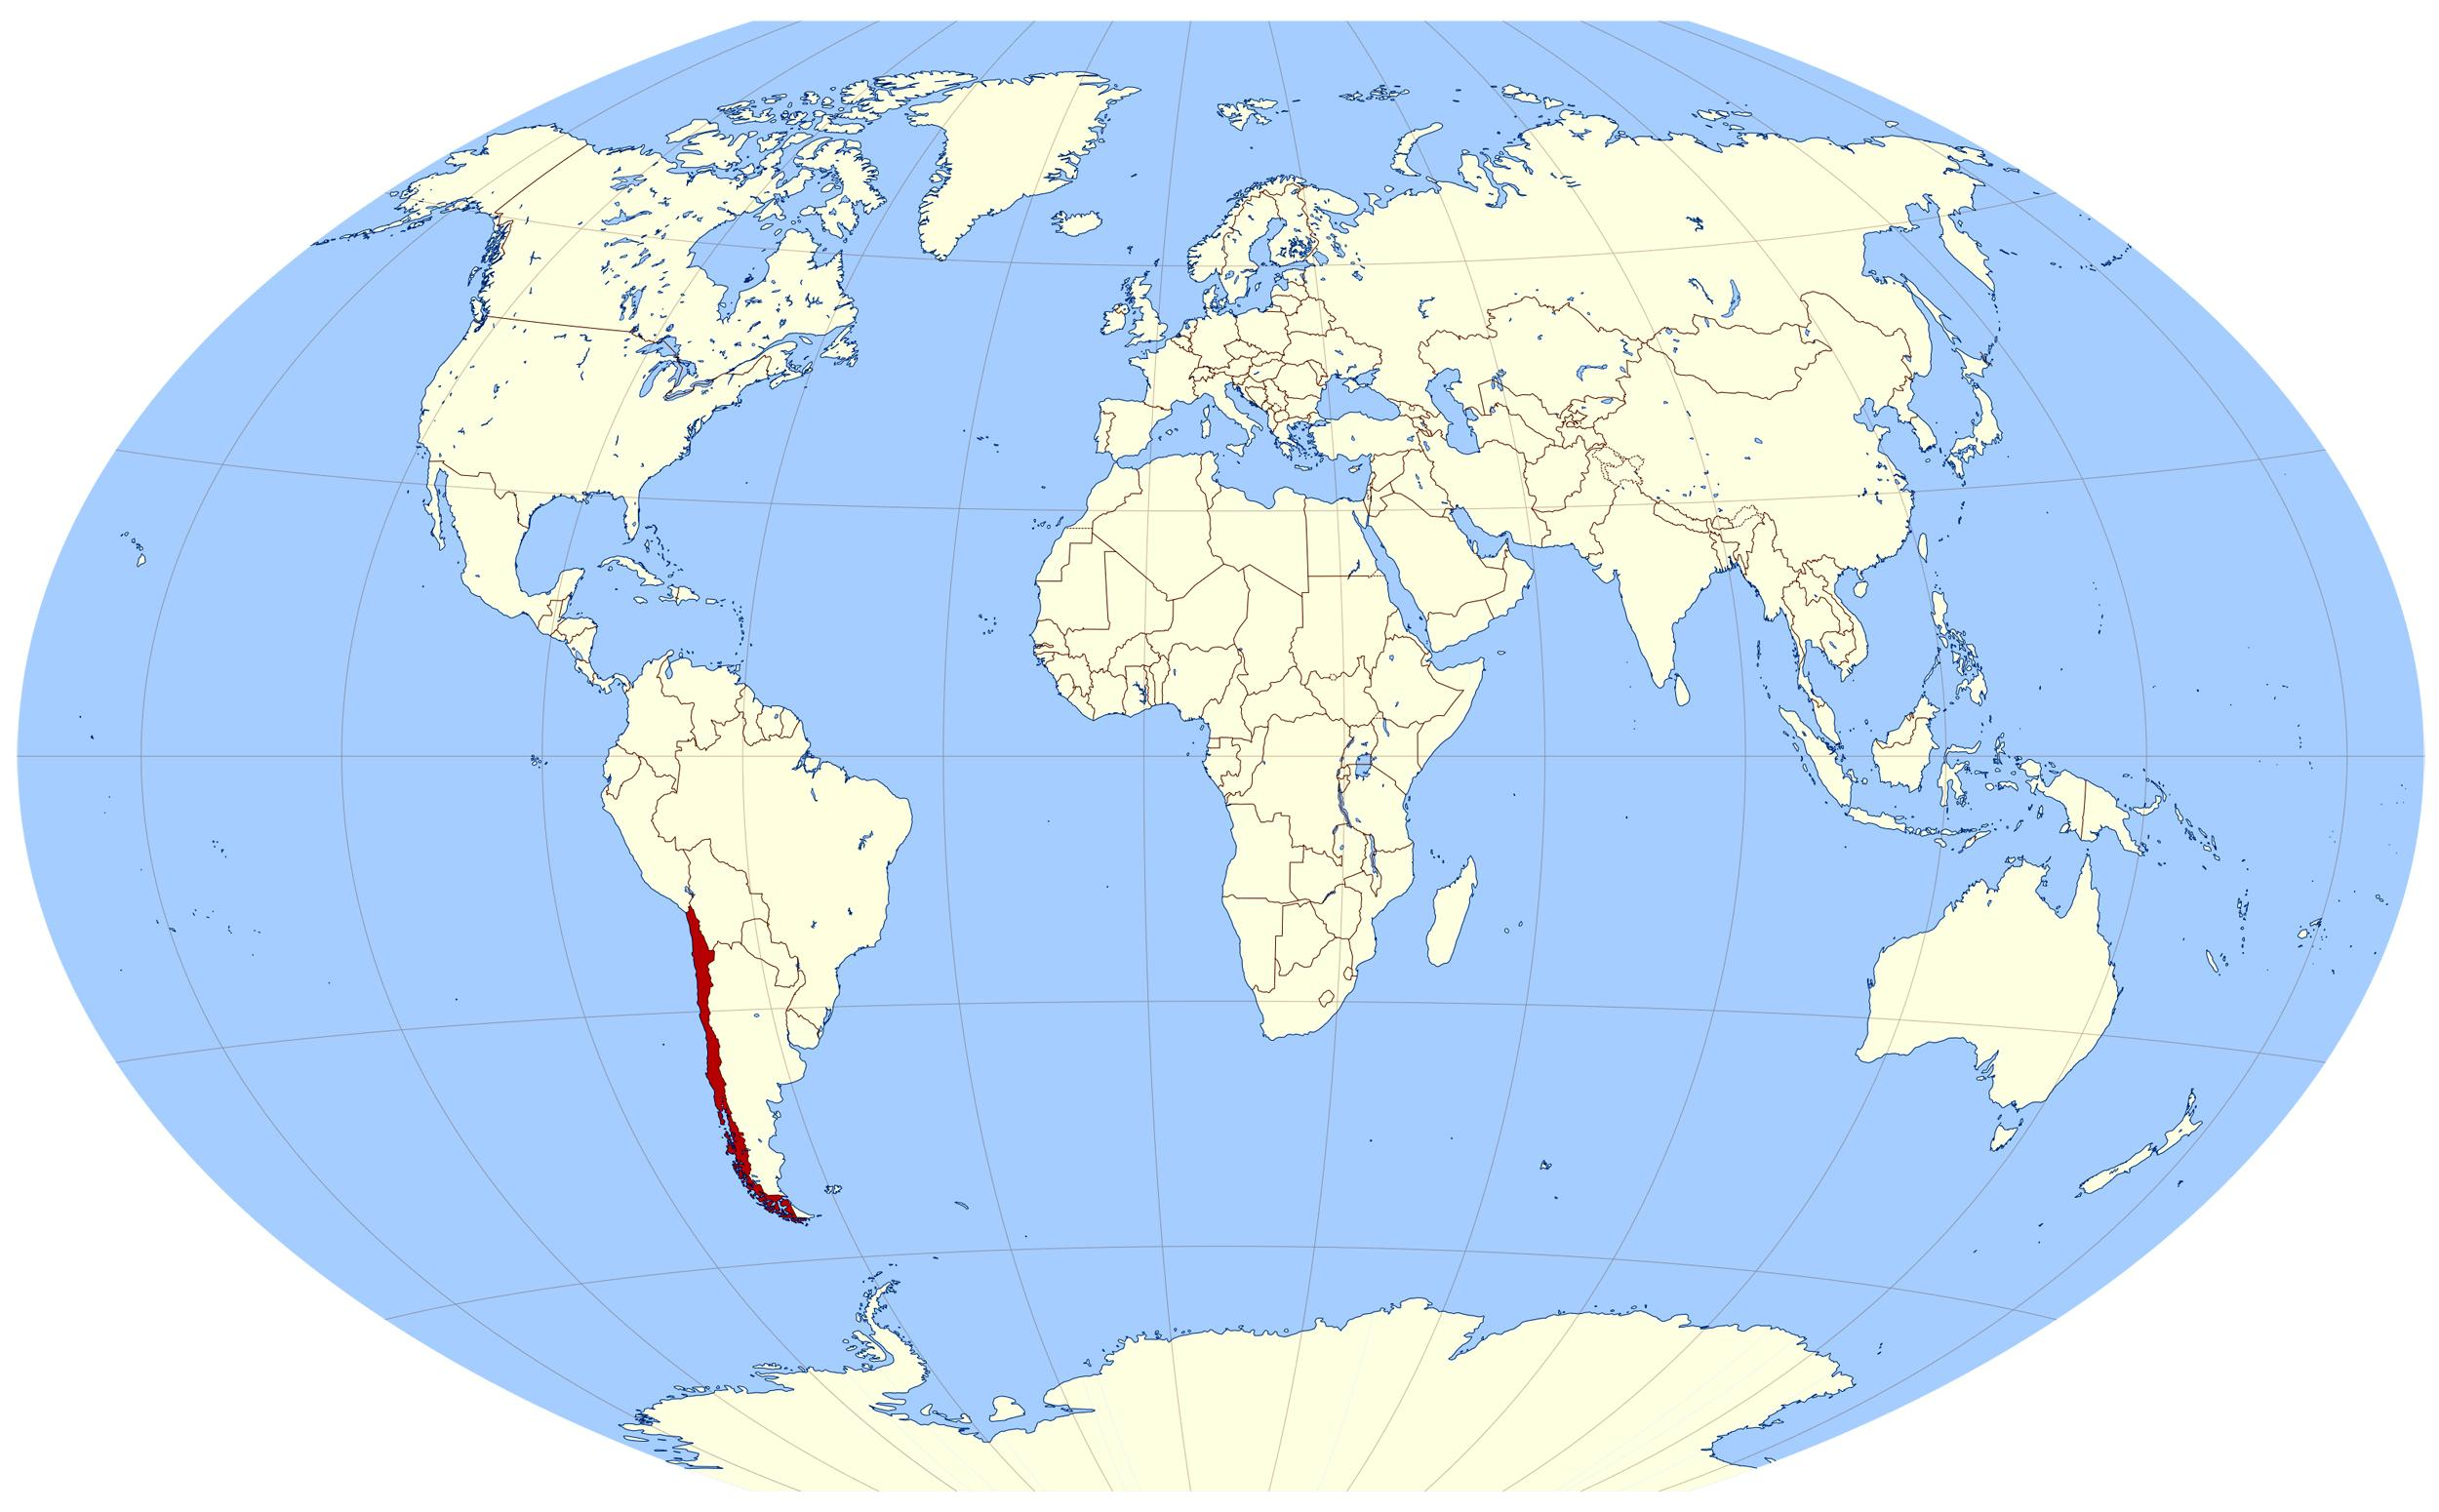 Chile on world map - World map showing Chile (South America - Americas)